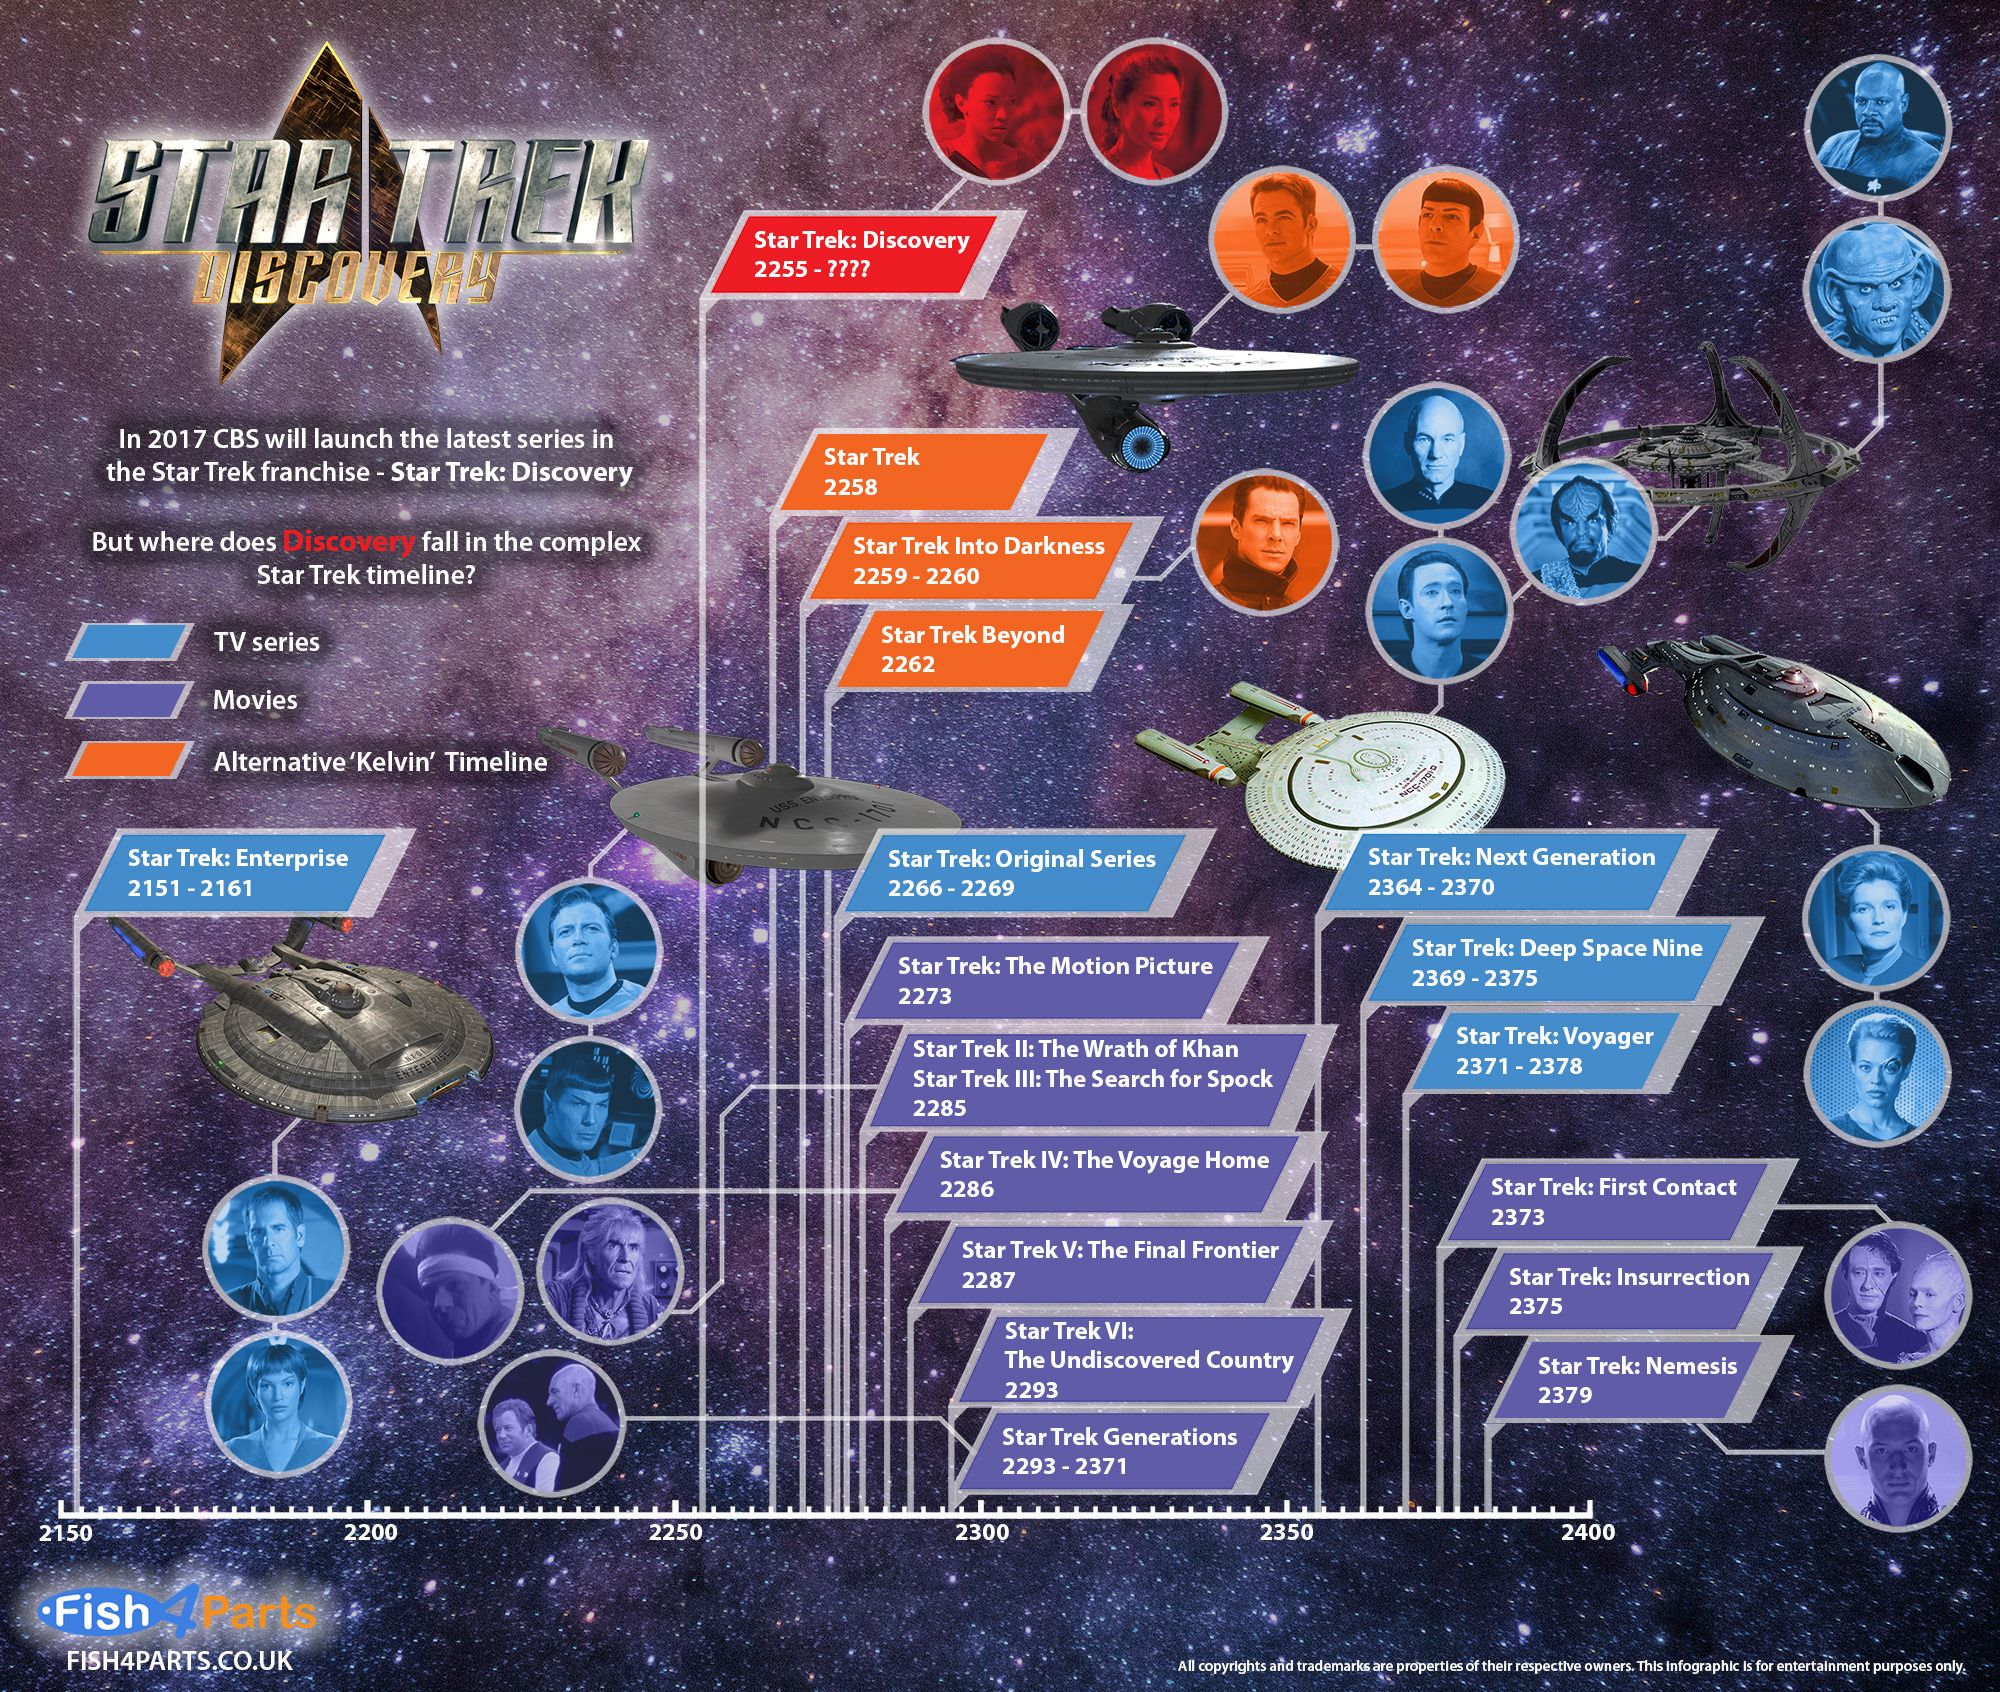 Where Does Star Trek Discovery Fit In The Timeline Infographic Star Trek Timelines Star Trek Fandom Star Trek